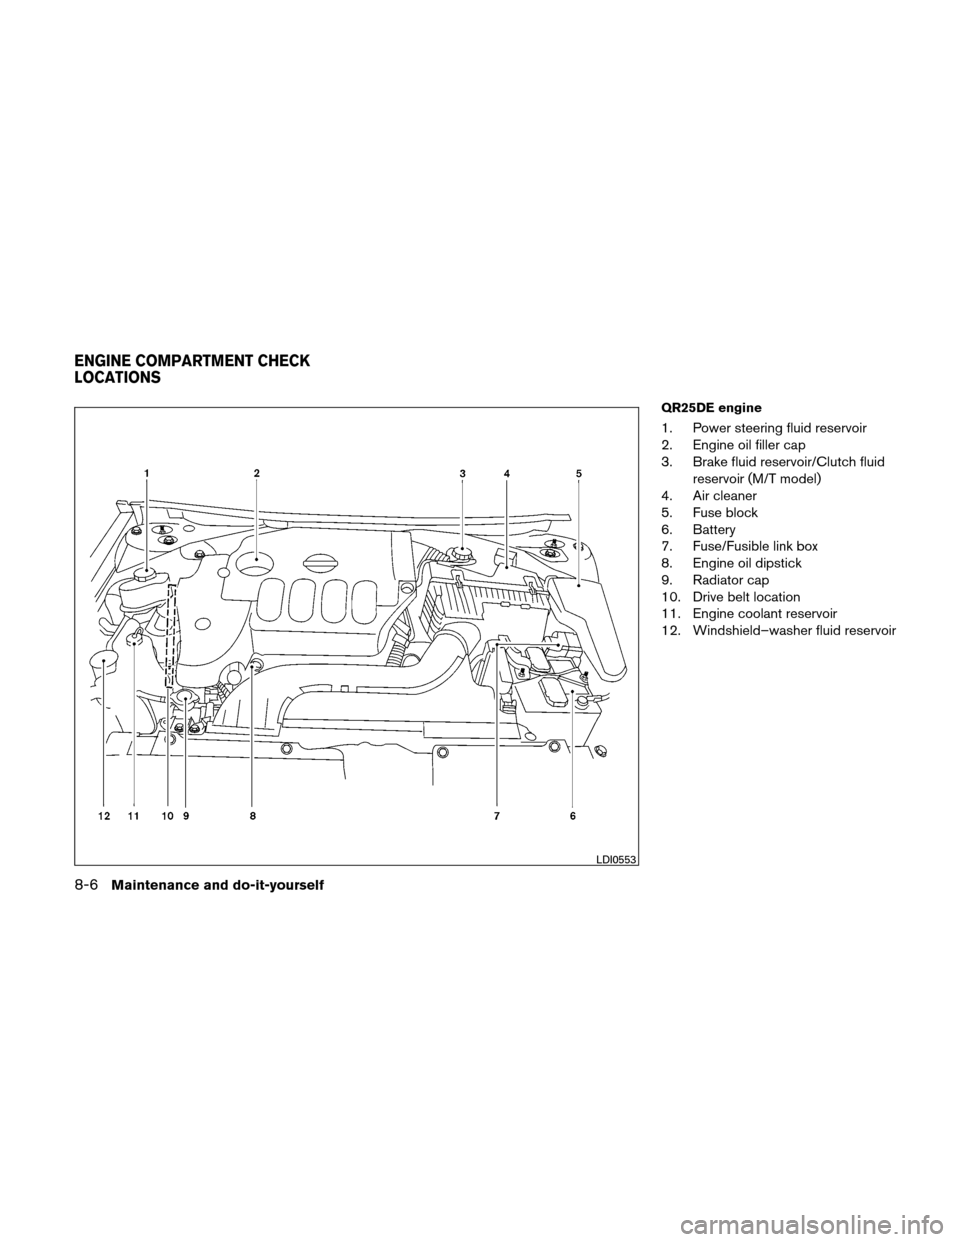 NISSAN ALTIMA COUPE 2010 D32 / 4.G Owners Manual, Page 363